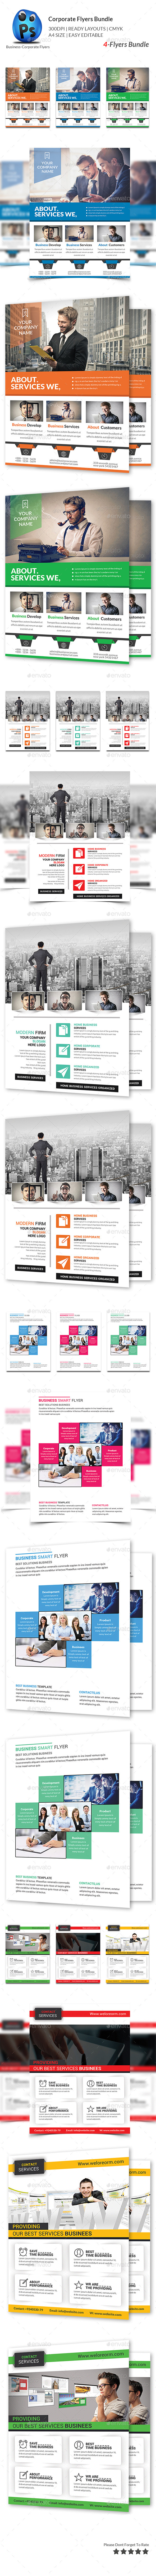 GraphicRiver Corporate Business 4 Flyer Bundle 10379074